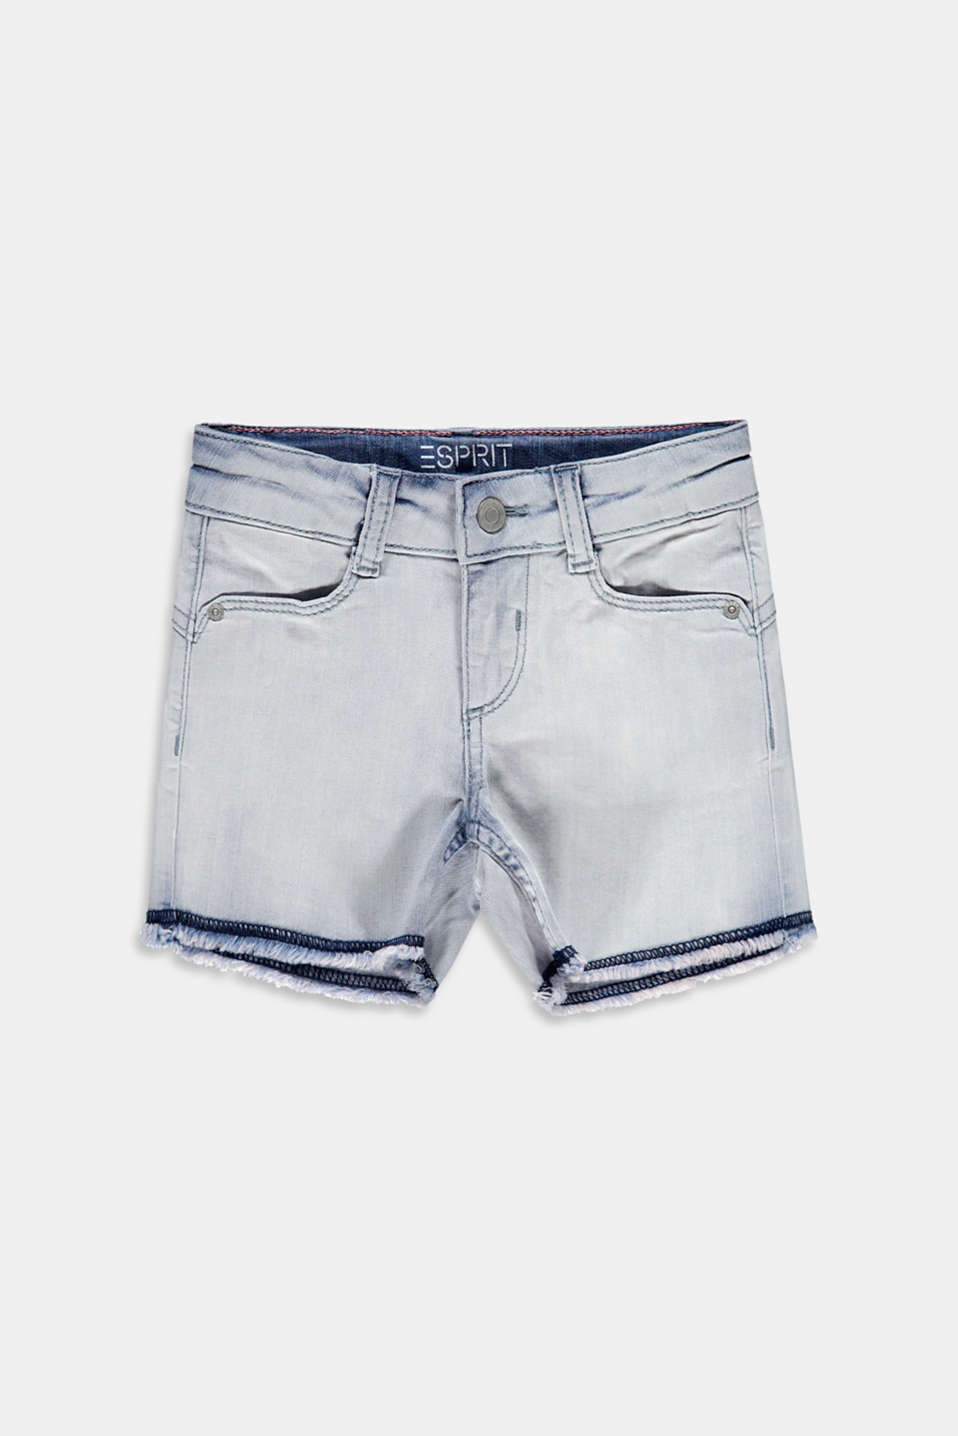 Esprit - Casual denim short met verstelbare band